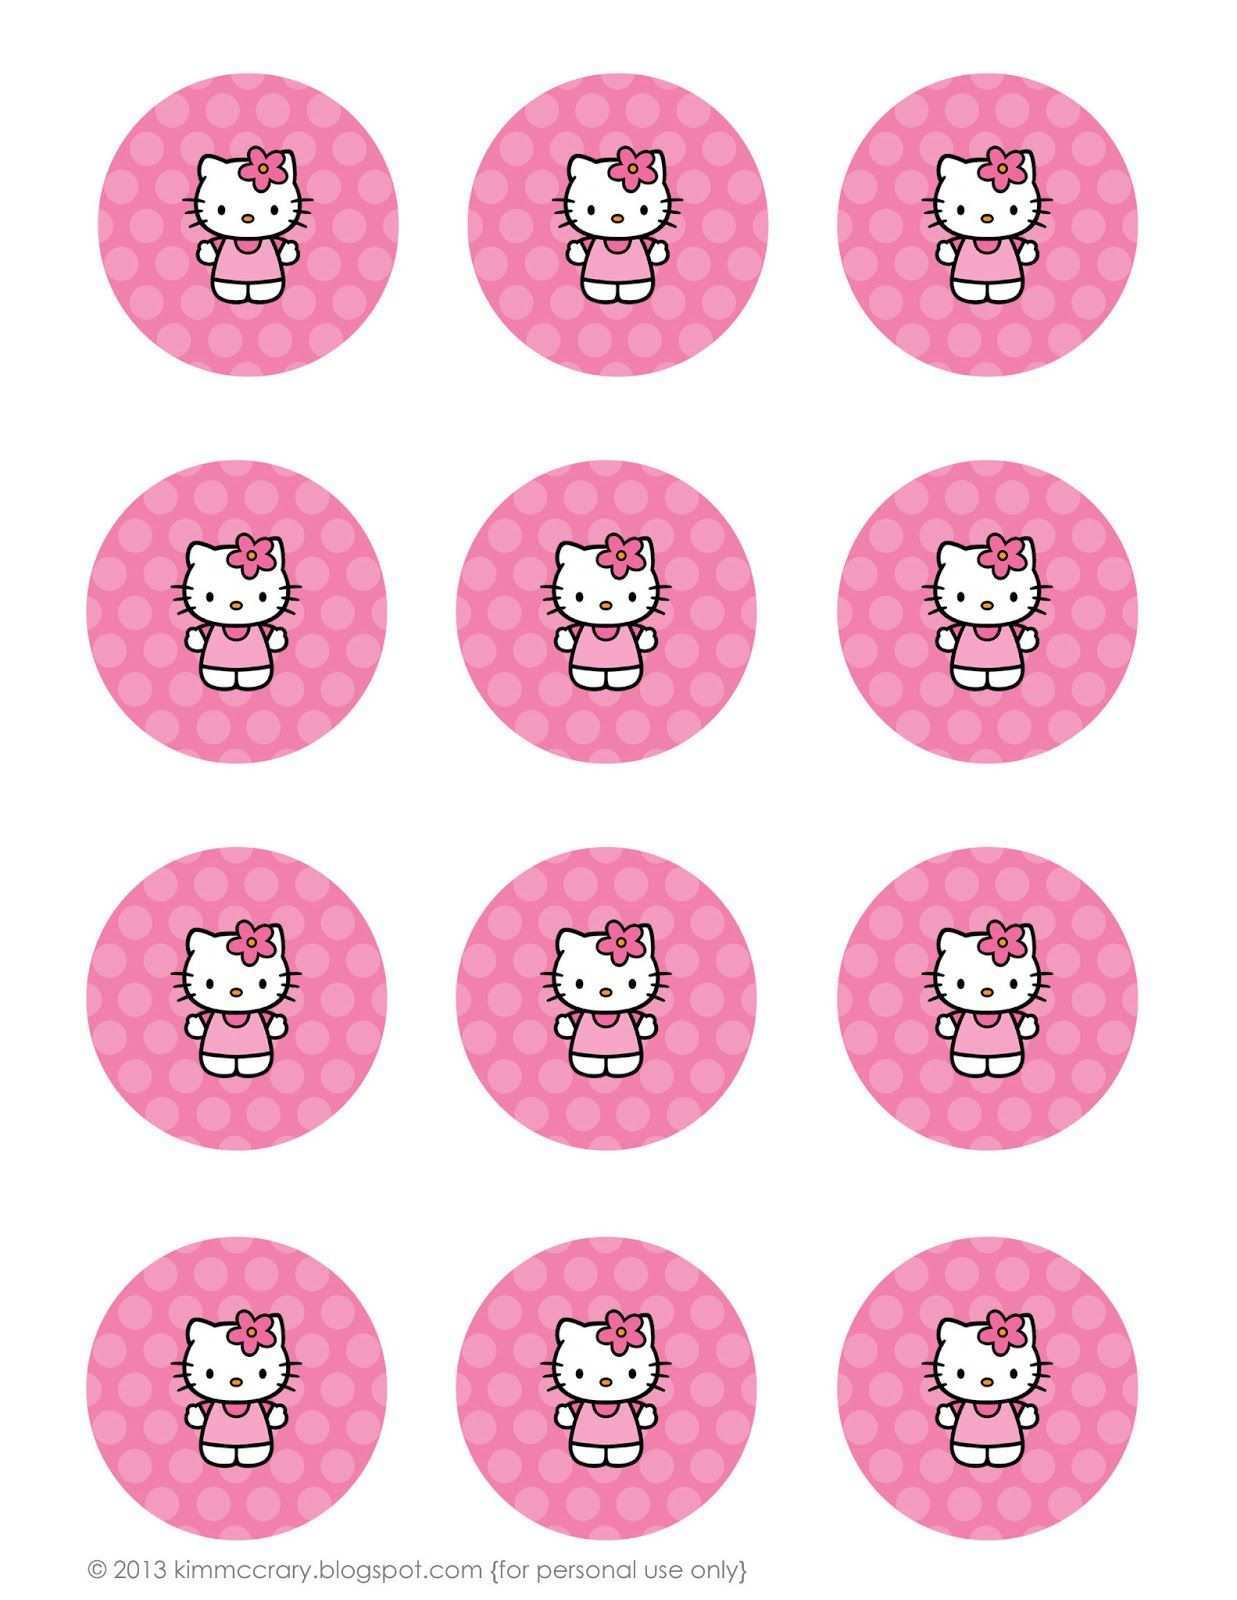 All Things Simple Simple Celebrations Hello Kitty Party Printables Hello Kitty Party Hello Kitty Birthday Hello Kitty Birthday Party